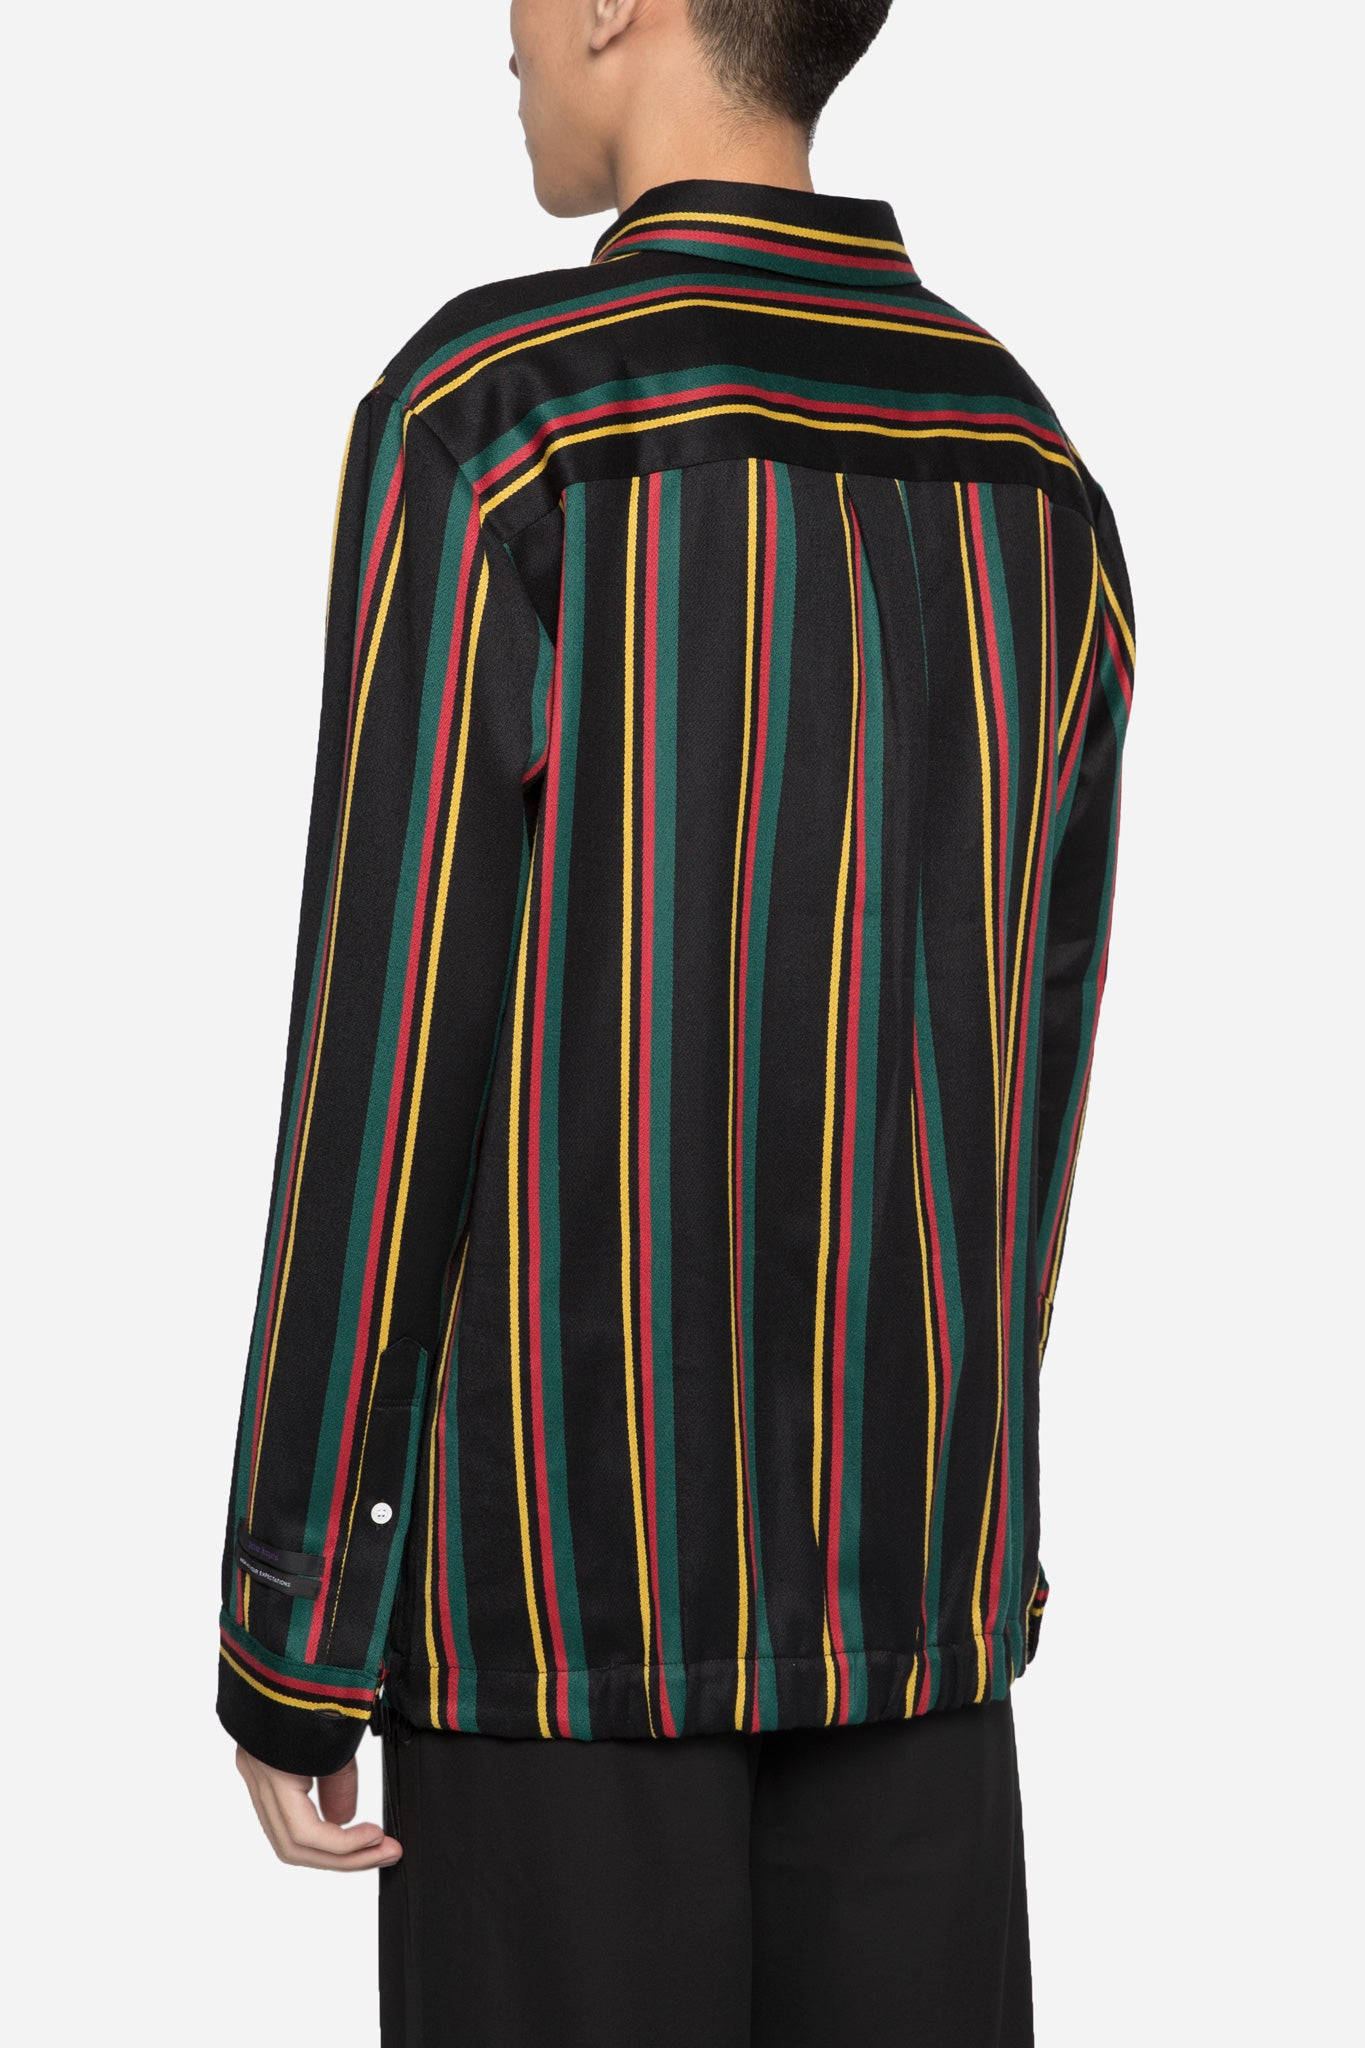 Coach Shirt Multicolor Black